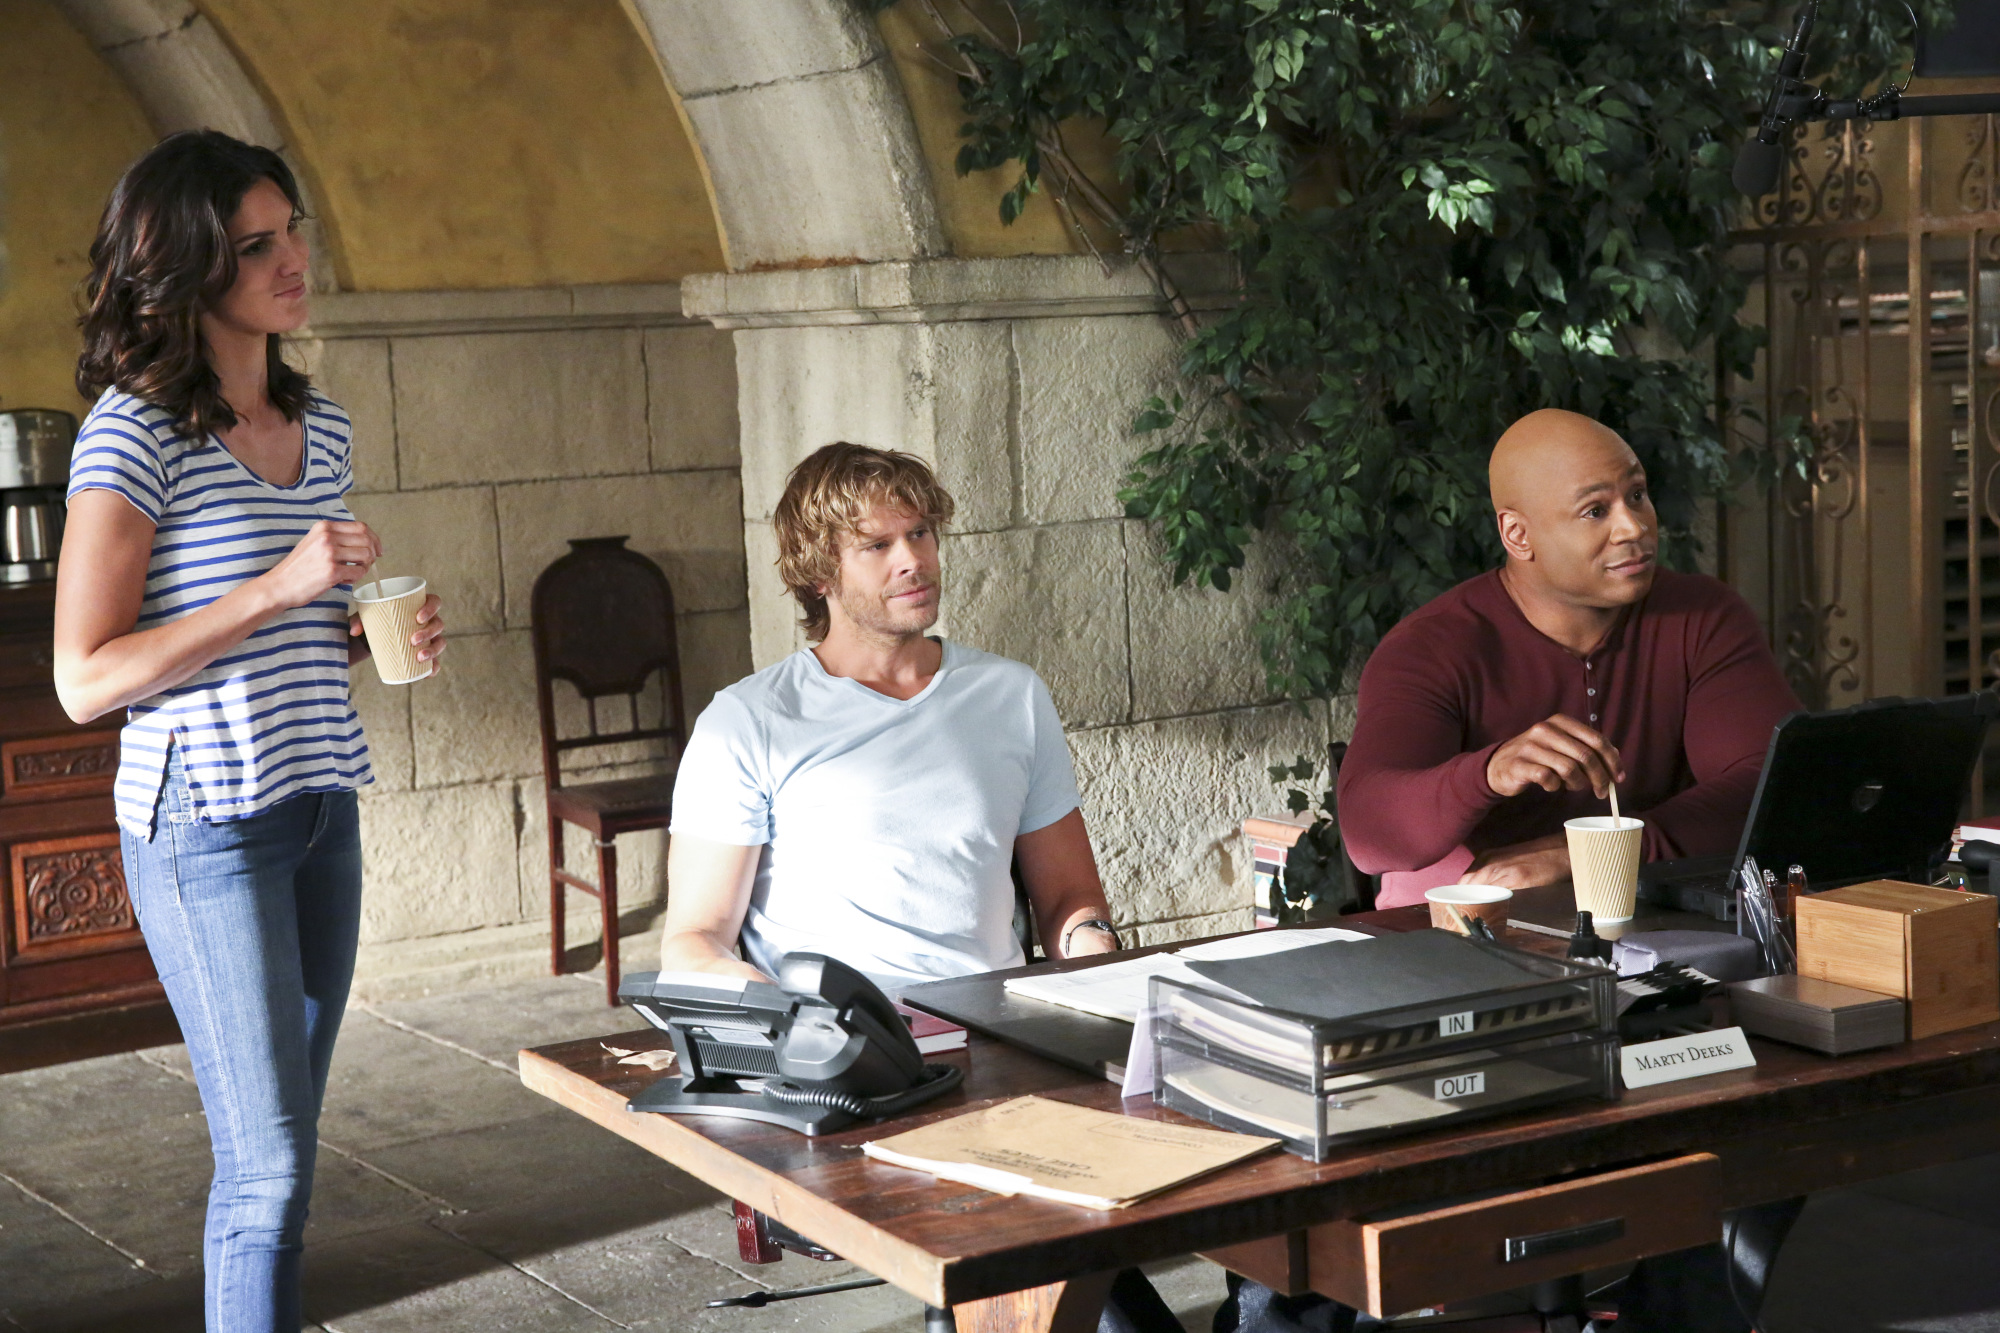 Daniela Ruah as Special Agent Kensi Blye, Eric Christian Olsen as LAPD Liaison Marty Deeks, and LL COOL J as Special Agent Sam Hanna.